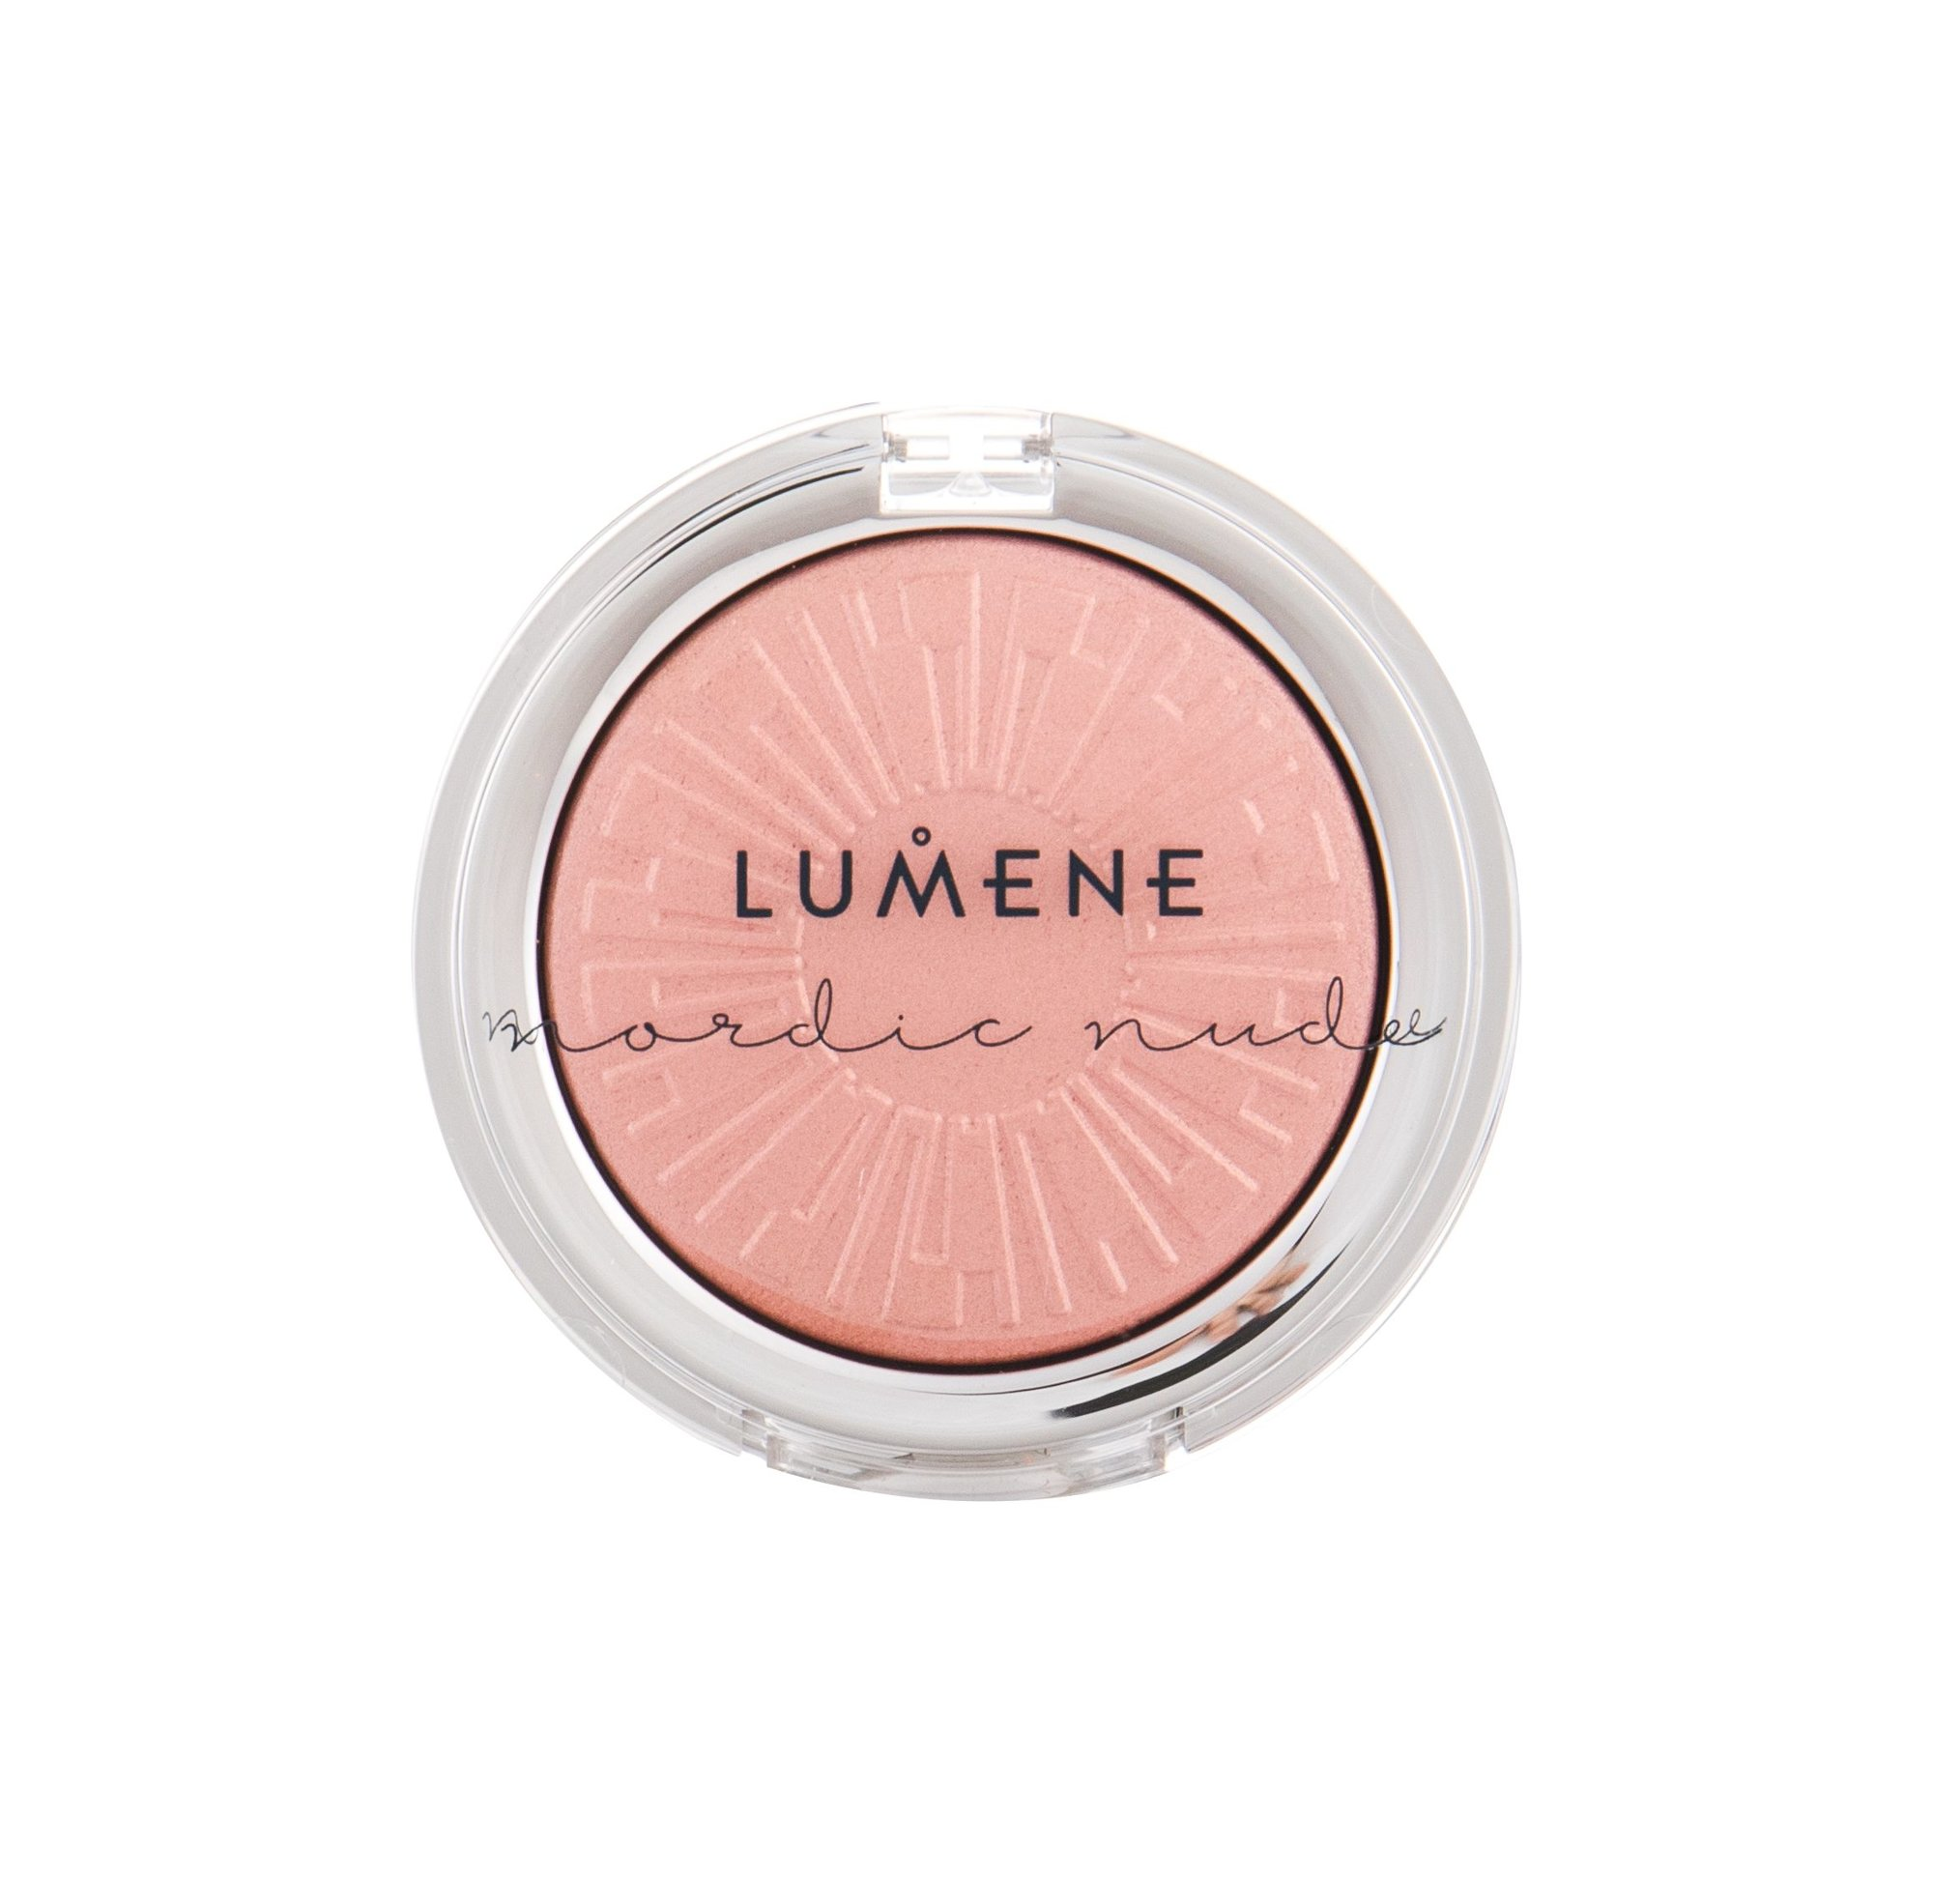 Lumene Nordic Nude Blush 4ml 1